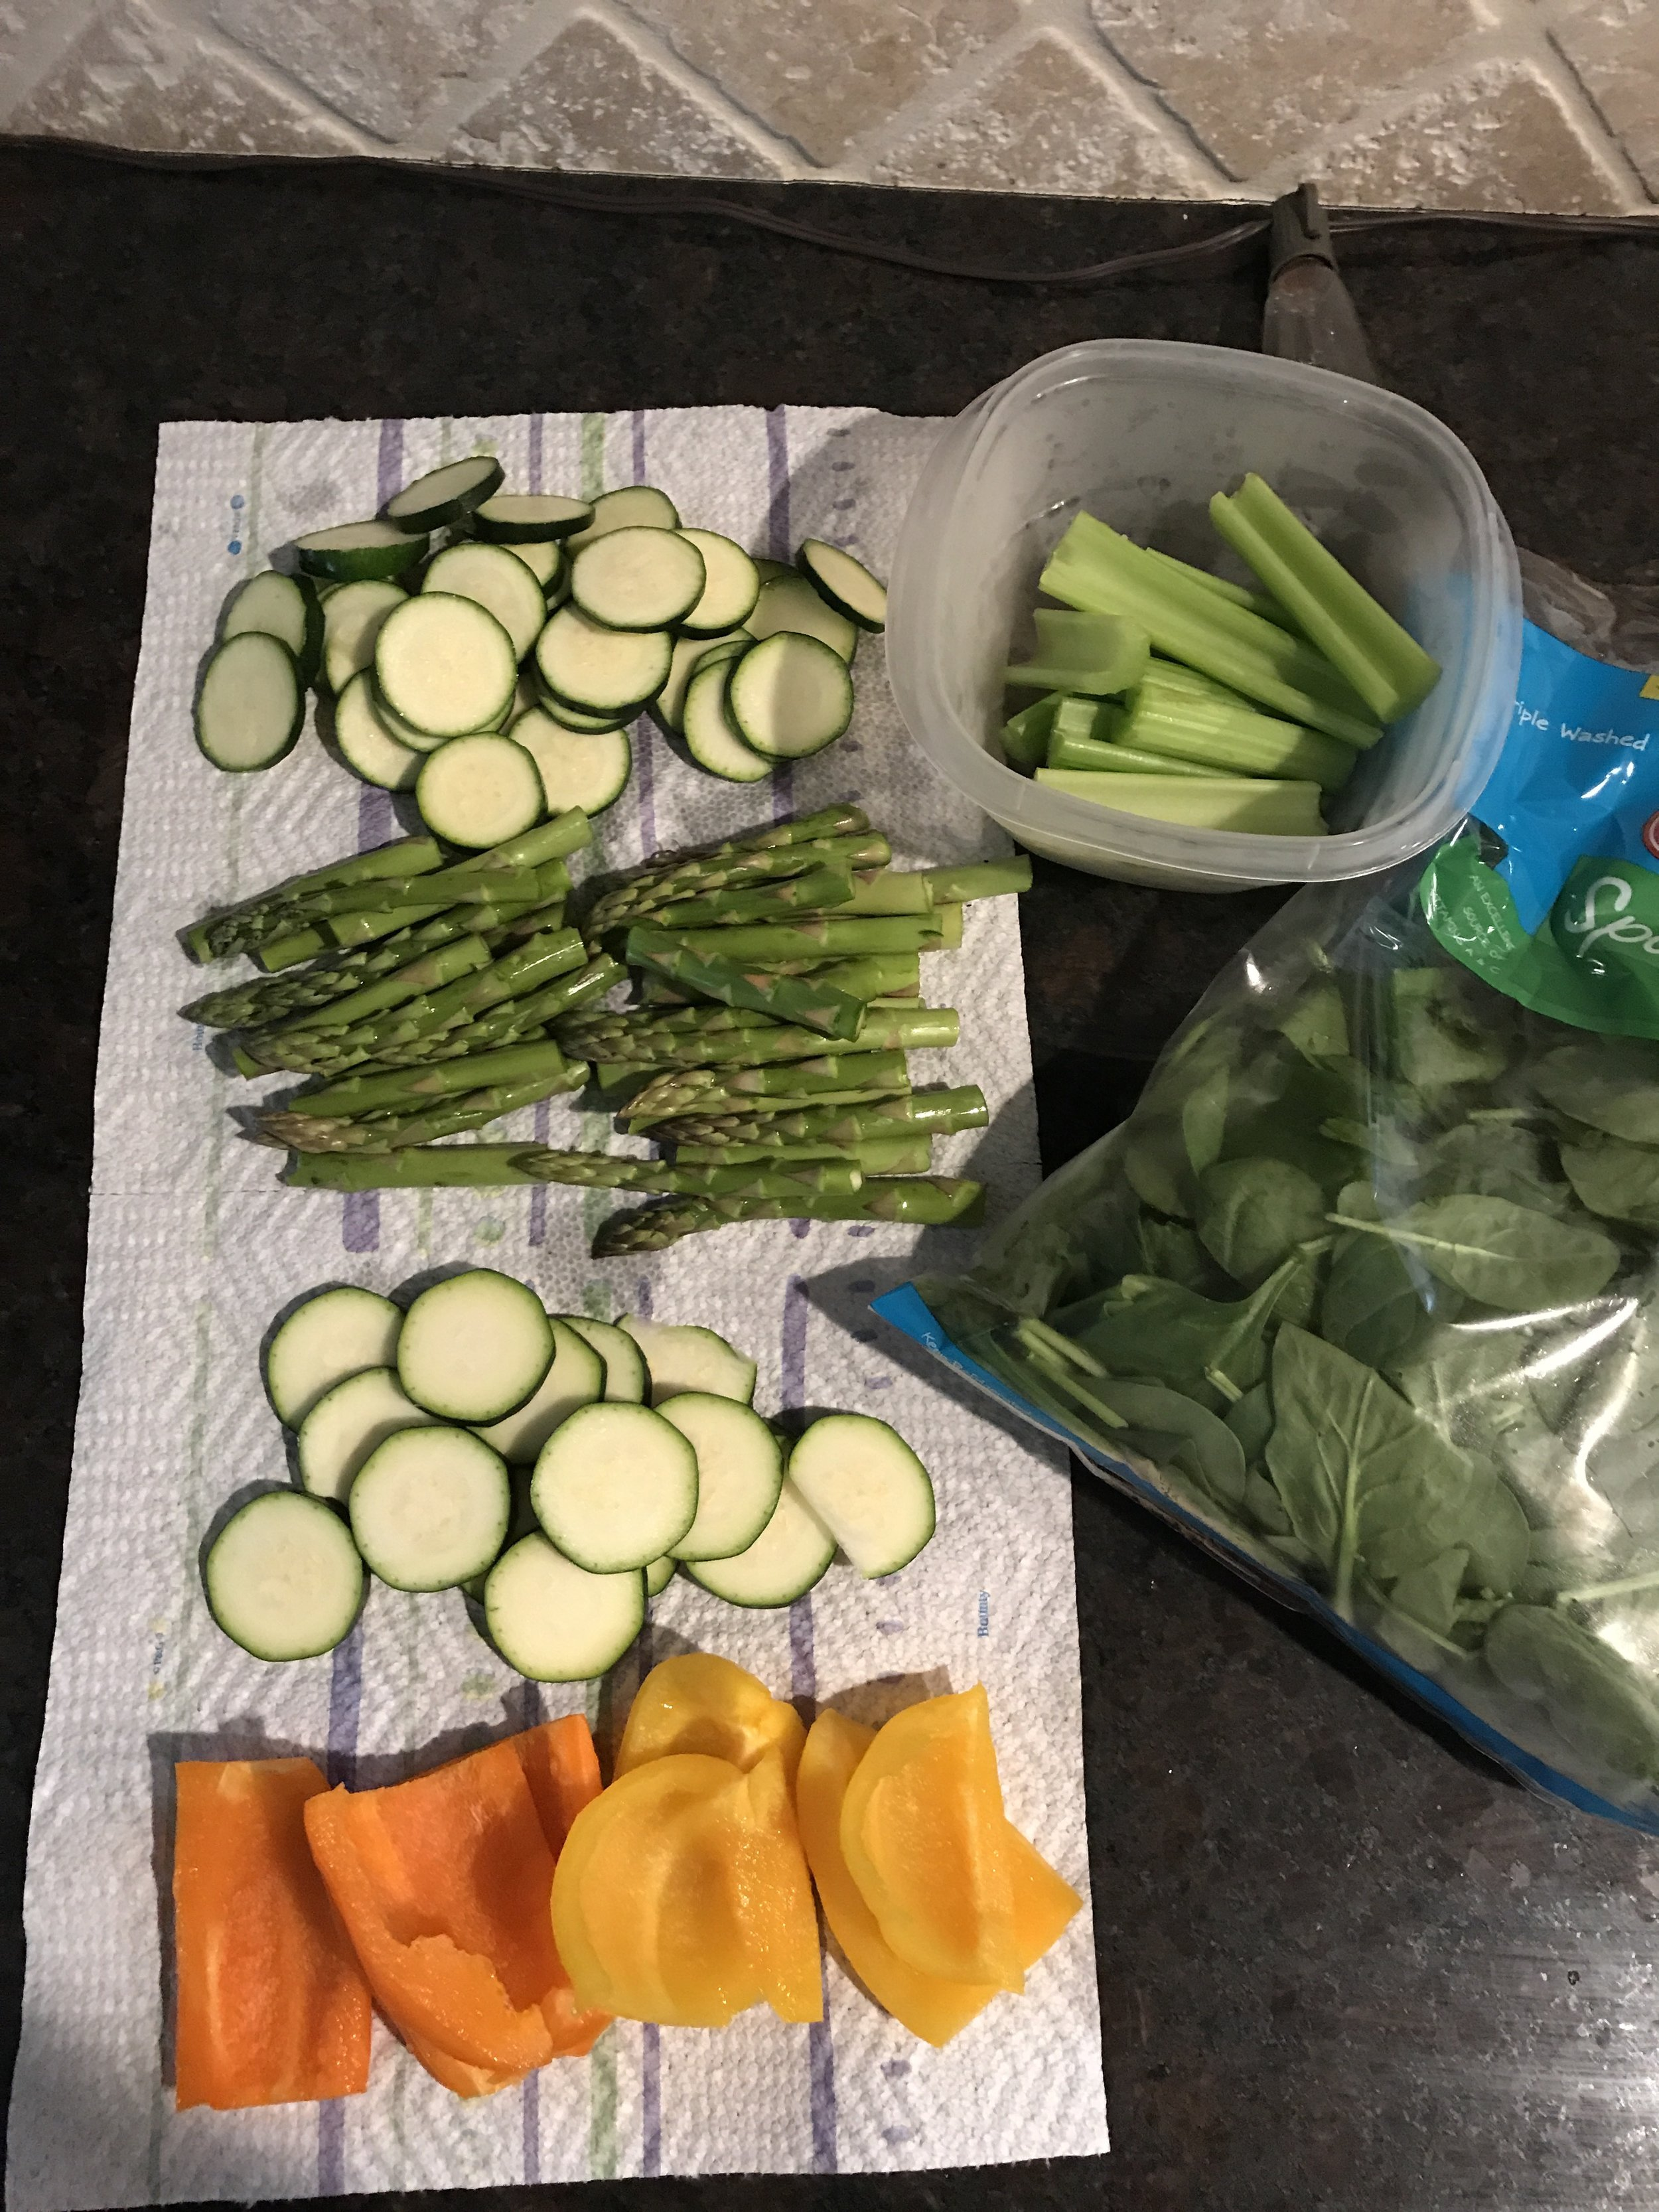 Veggie prep for the week: Celery, spinach, bell peppers, asparagus, zucchini